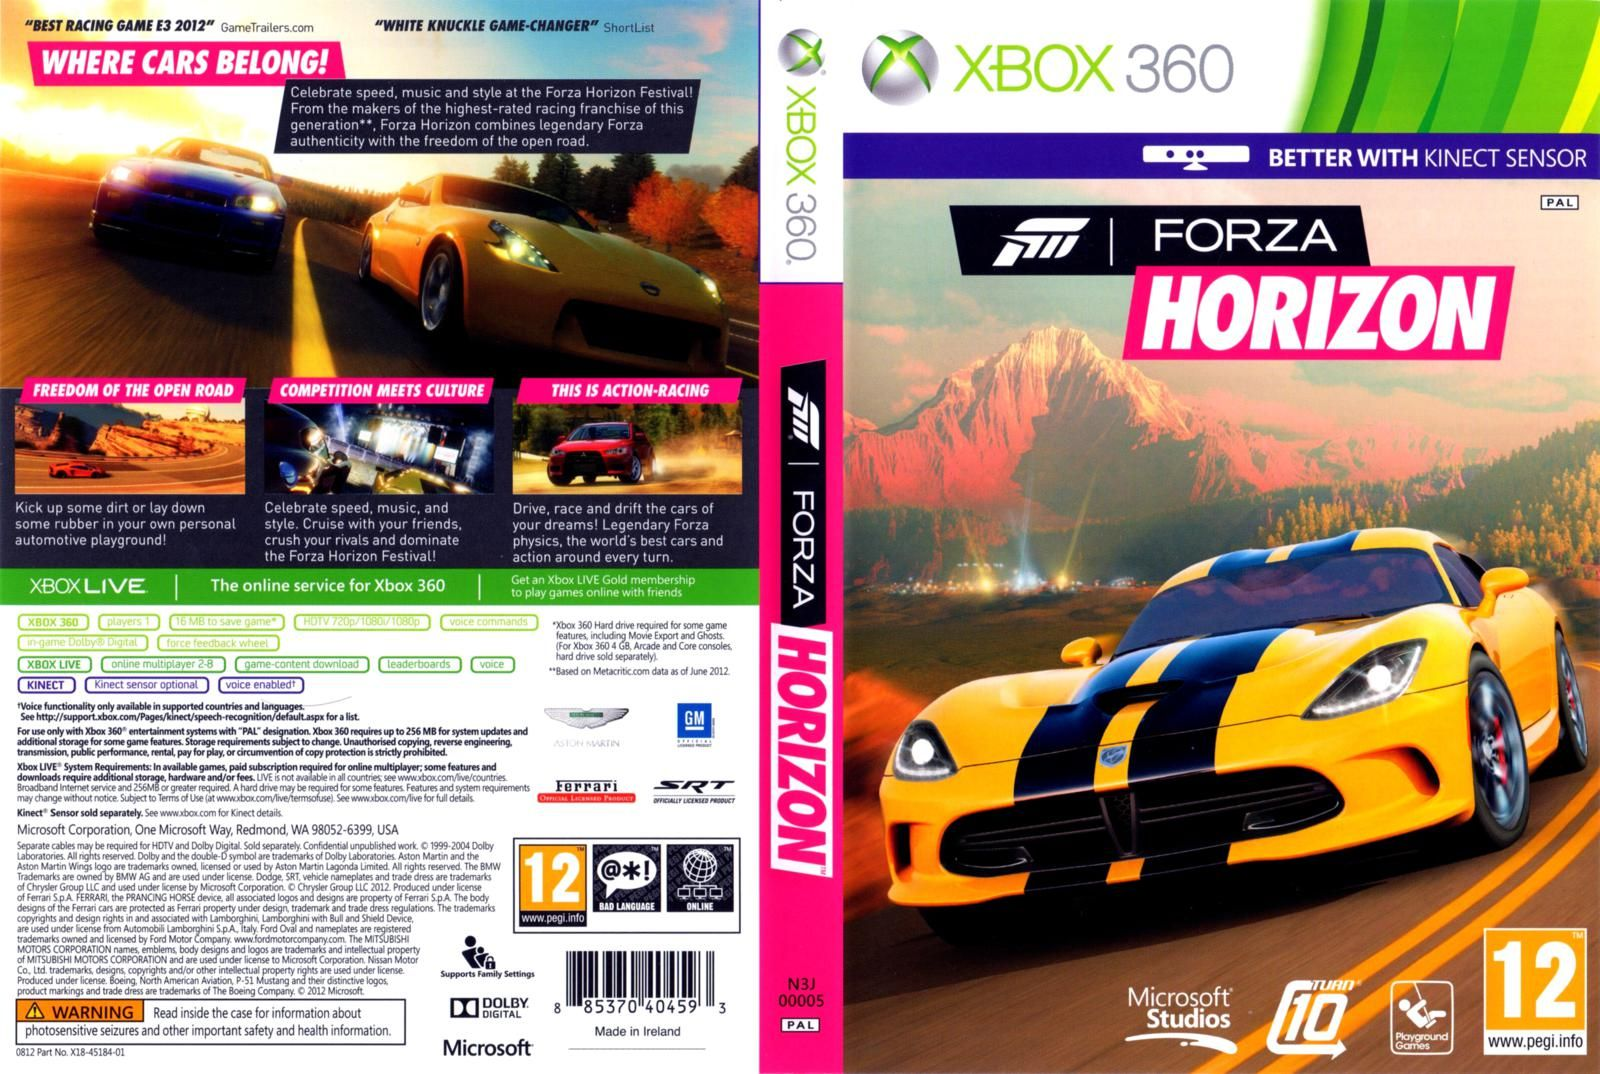 forza horizon xbox 360 forza horizon xbox 360 forza. Black Bedroom Furniture Sets. Home Design Ideas